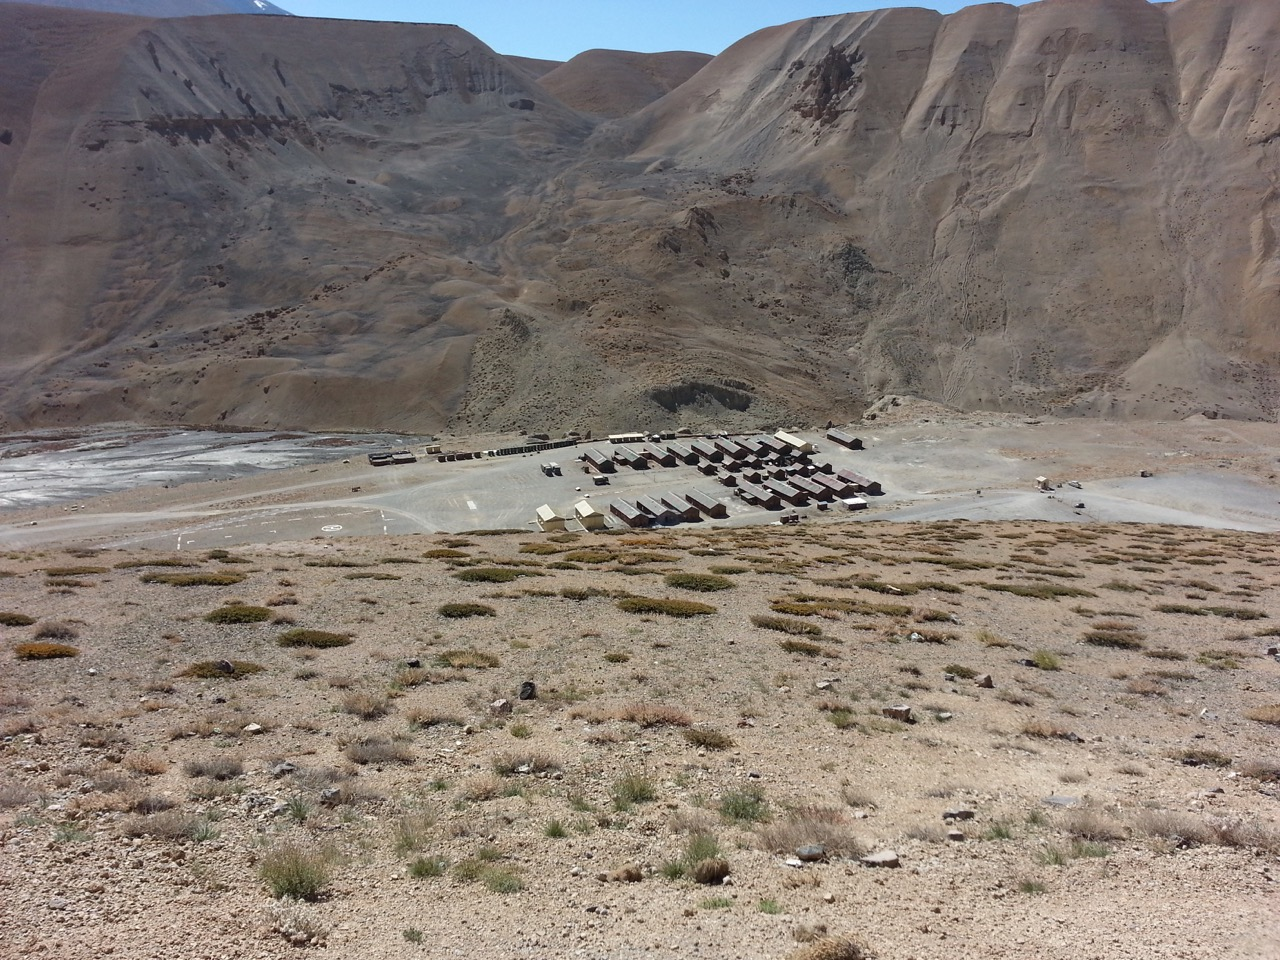 Remote military camps